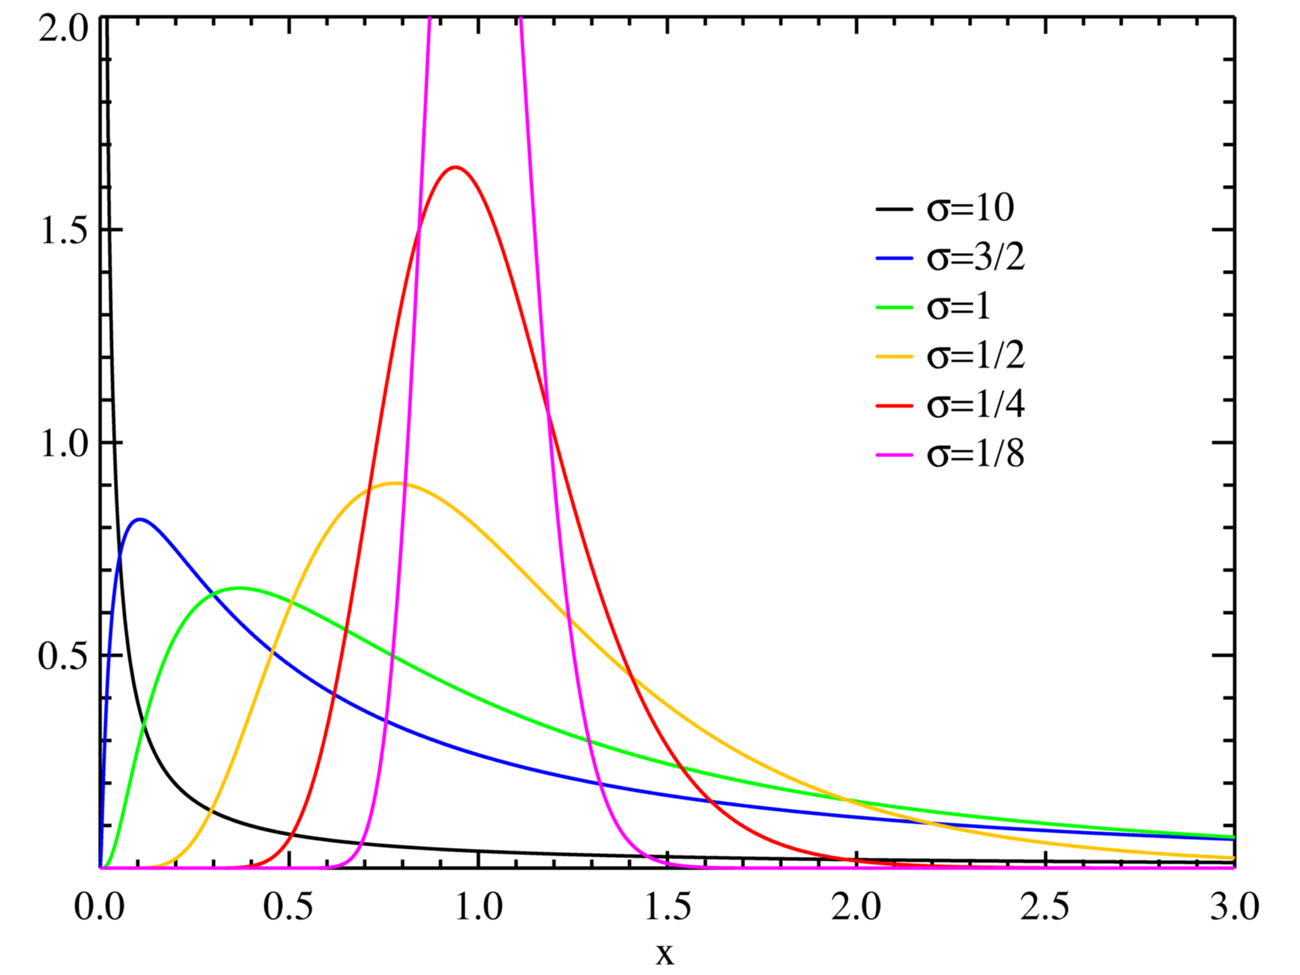 https://upload.wikimedia.org/wikipedia/commons/4/46/Lognormal_distribution_PDF.png